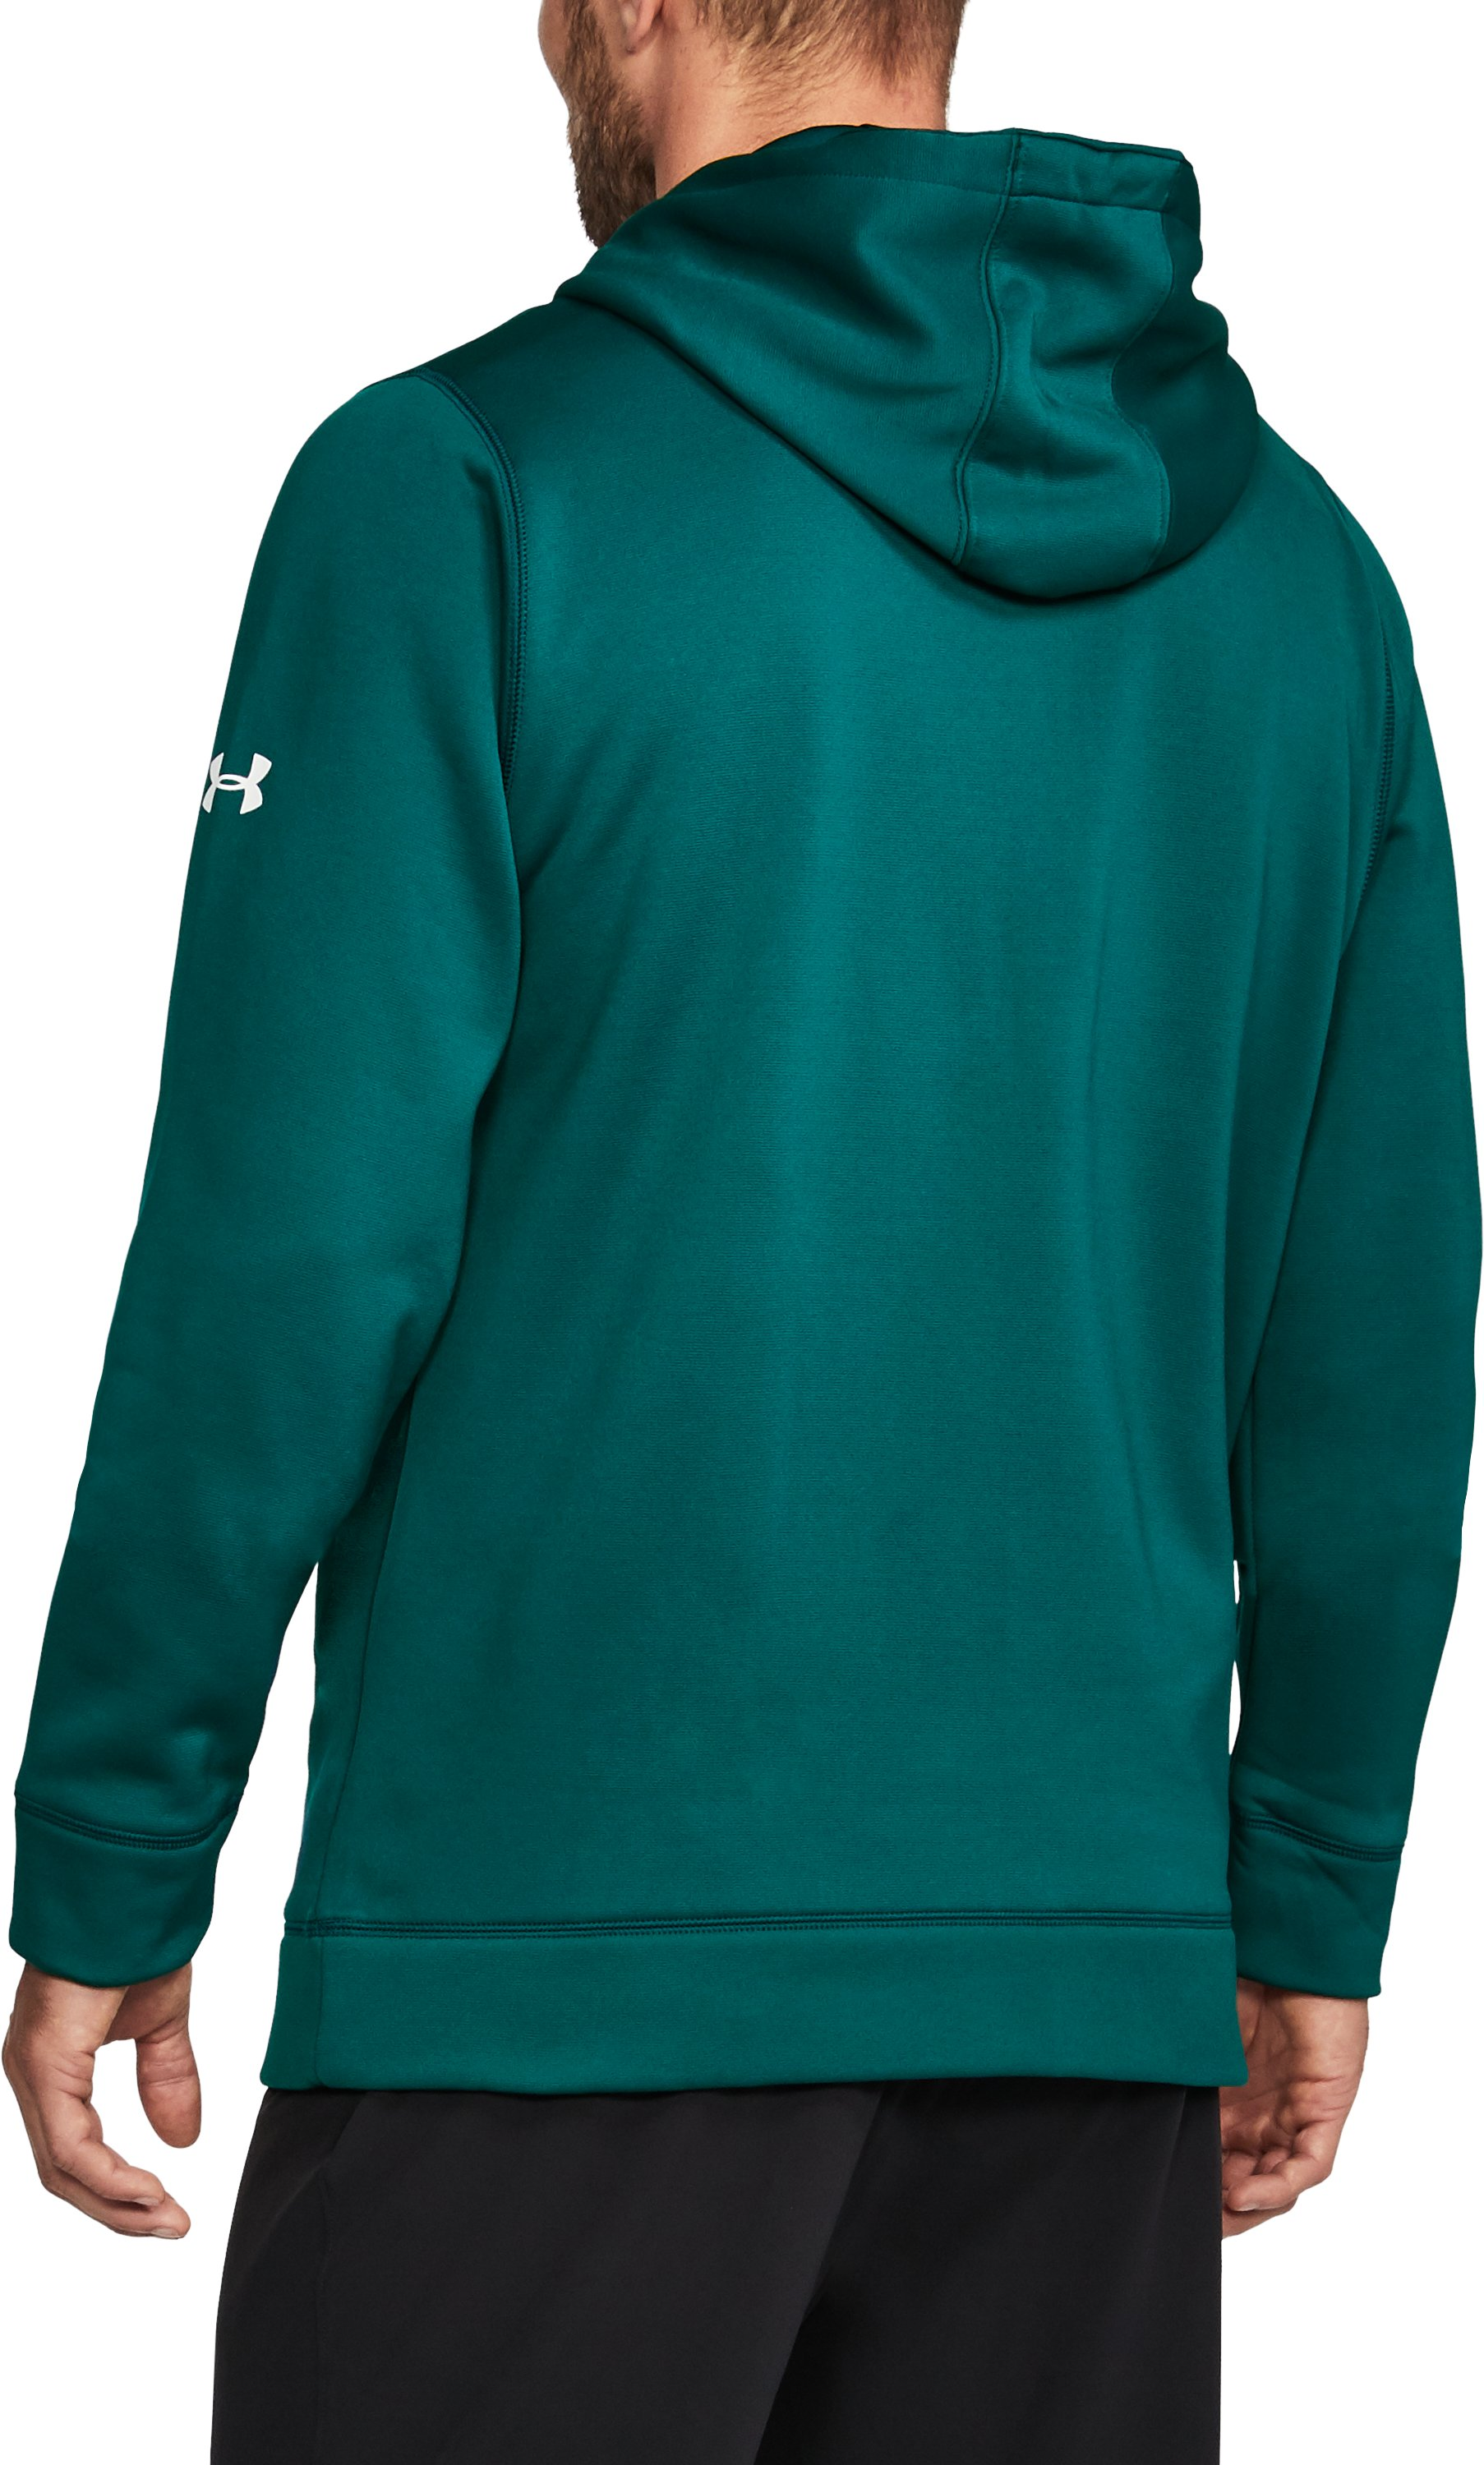 Men's NFL Combine Authentic UA Hoodie, Philadelphia Eagles,